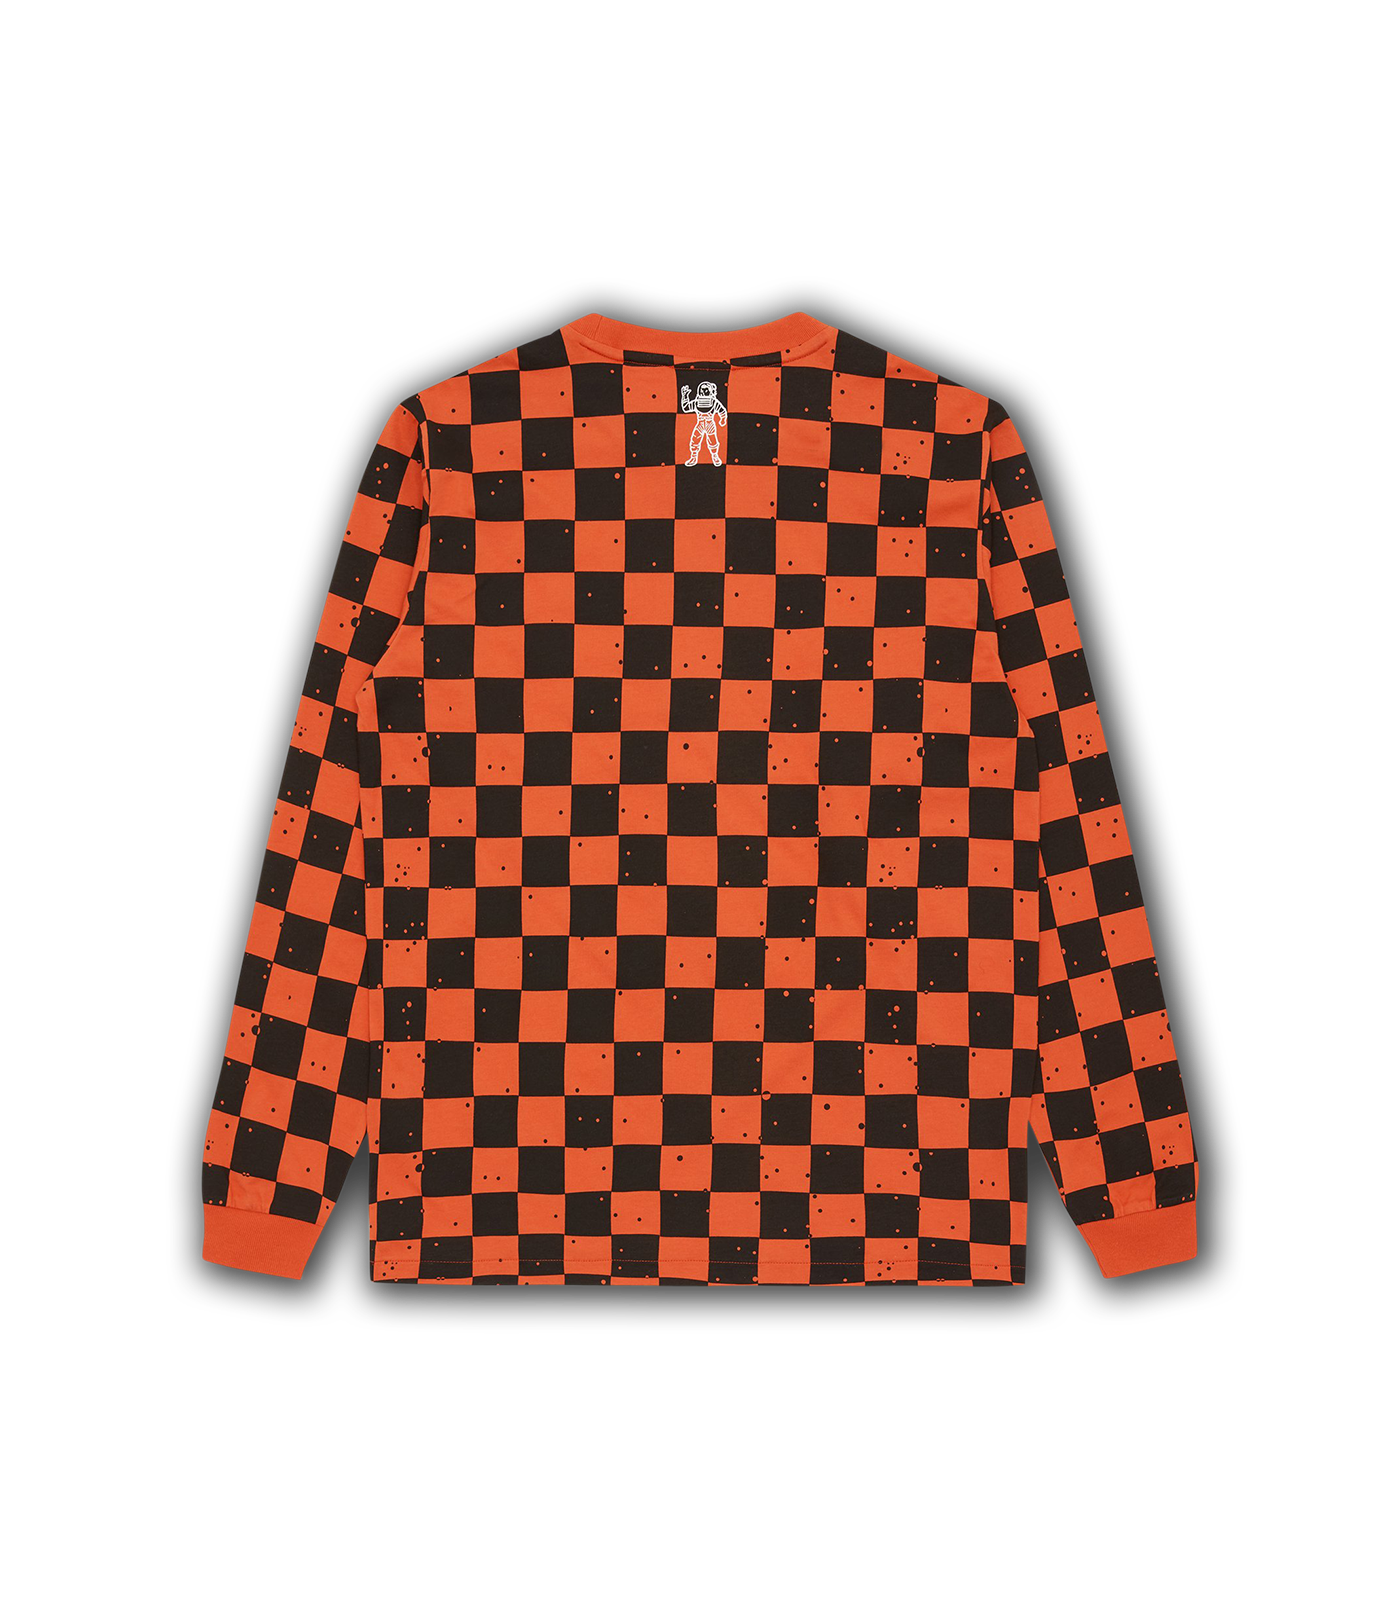 SPACE CHECK L/S T-SHIRT - ORANGE